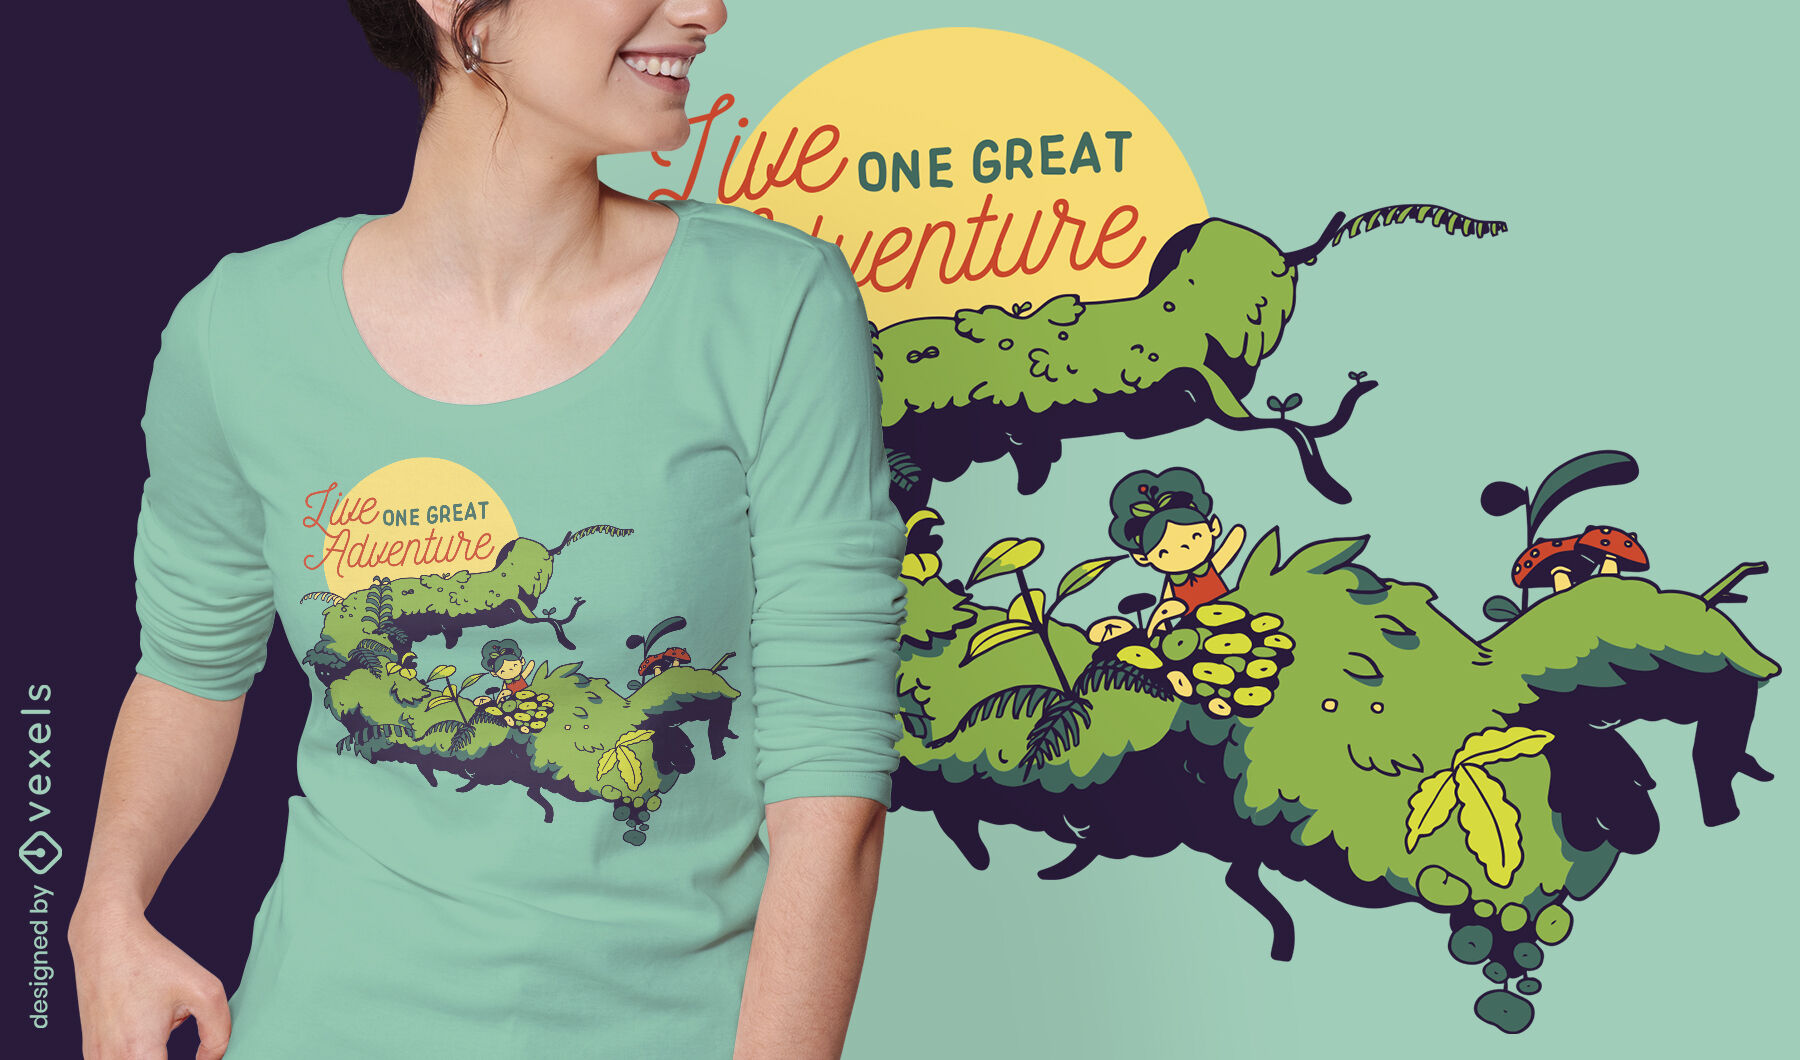 Tiny girl in branch adventure quote t-shirt design